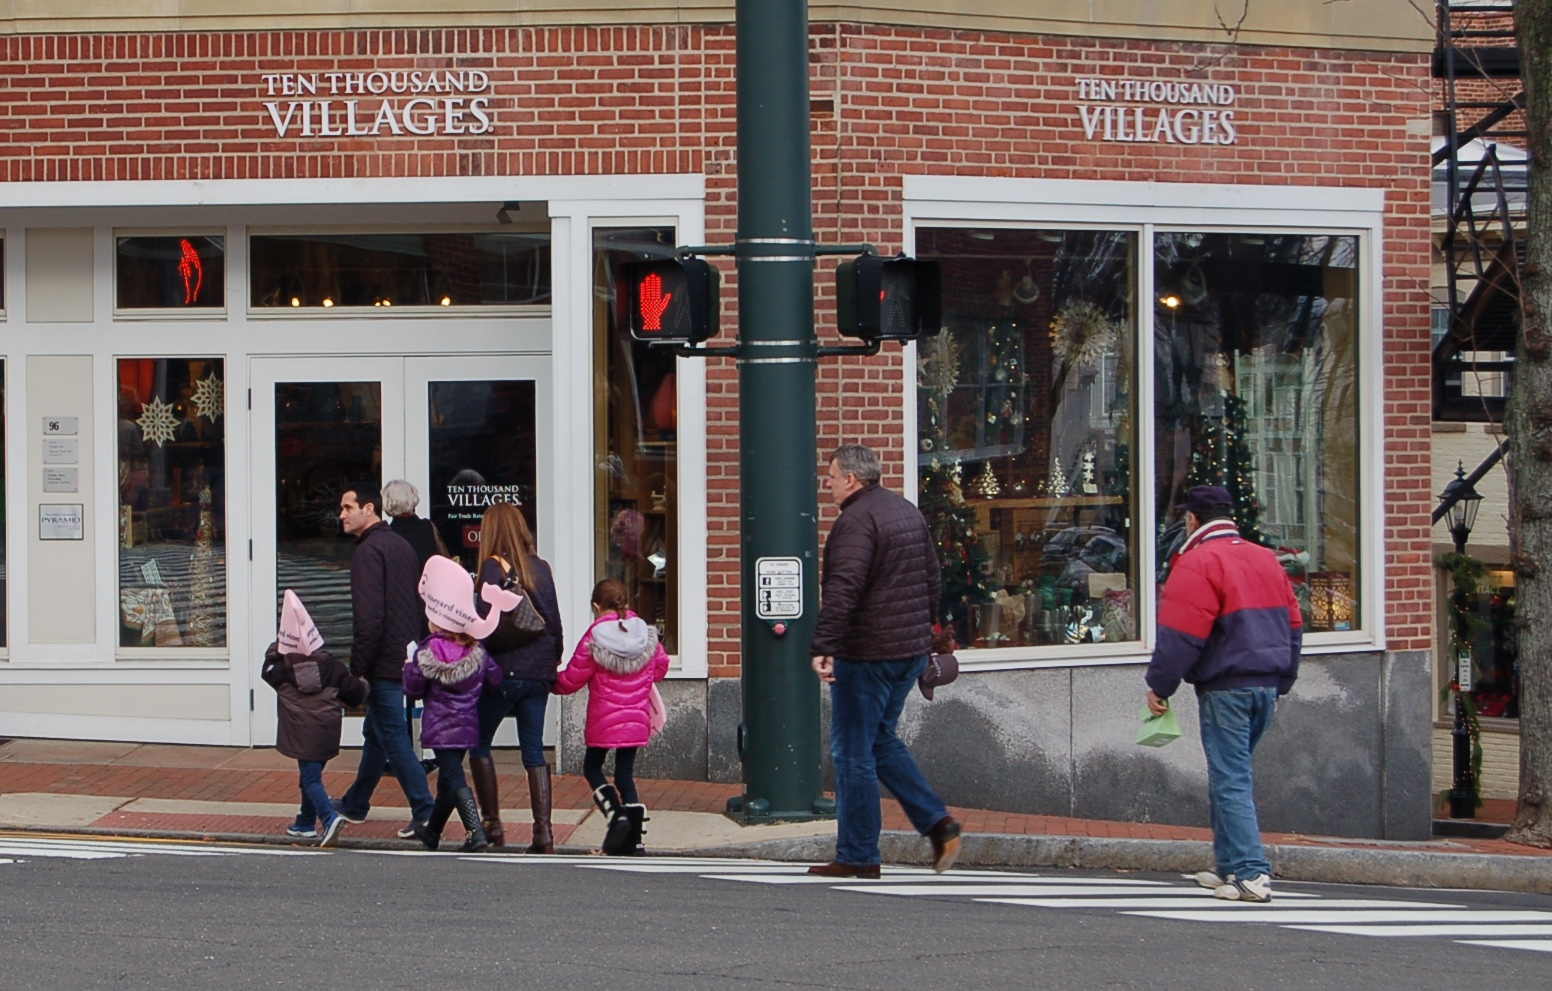 Ten Thousand Villages is located at 96 Main St., New Canaan.